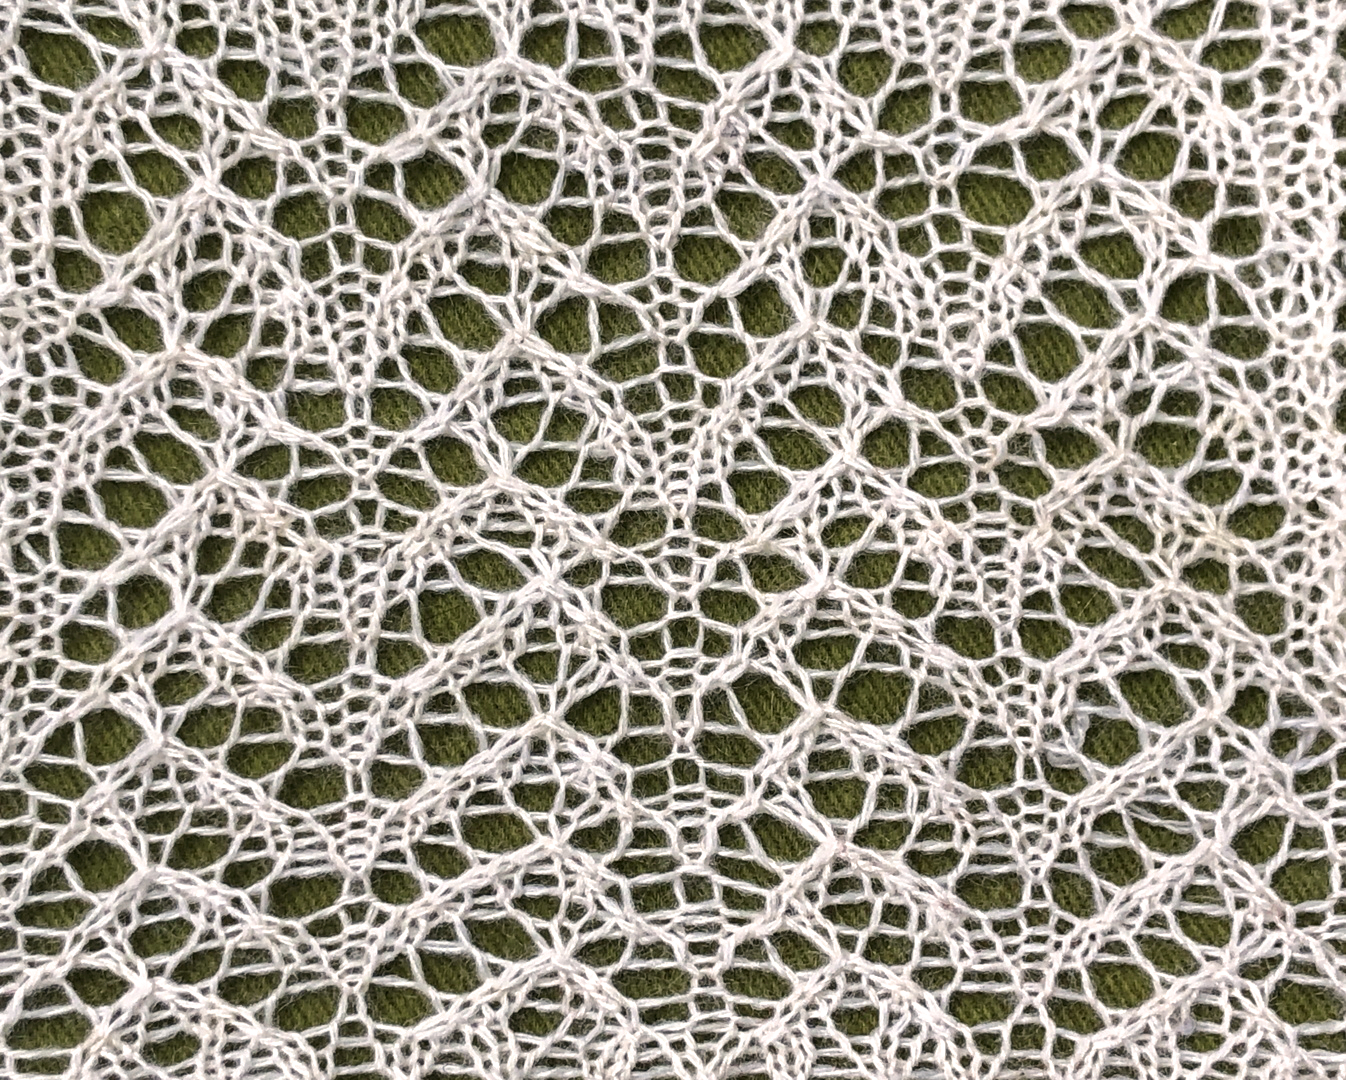 Bergamot excerpt: a free lace knitting stitch pattern, by Naomi Parkhurst (photo)